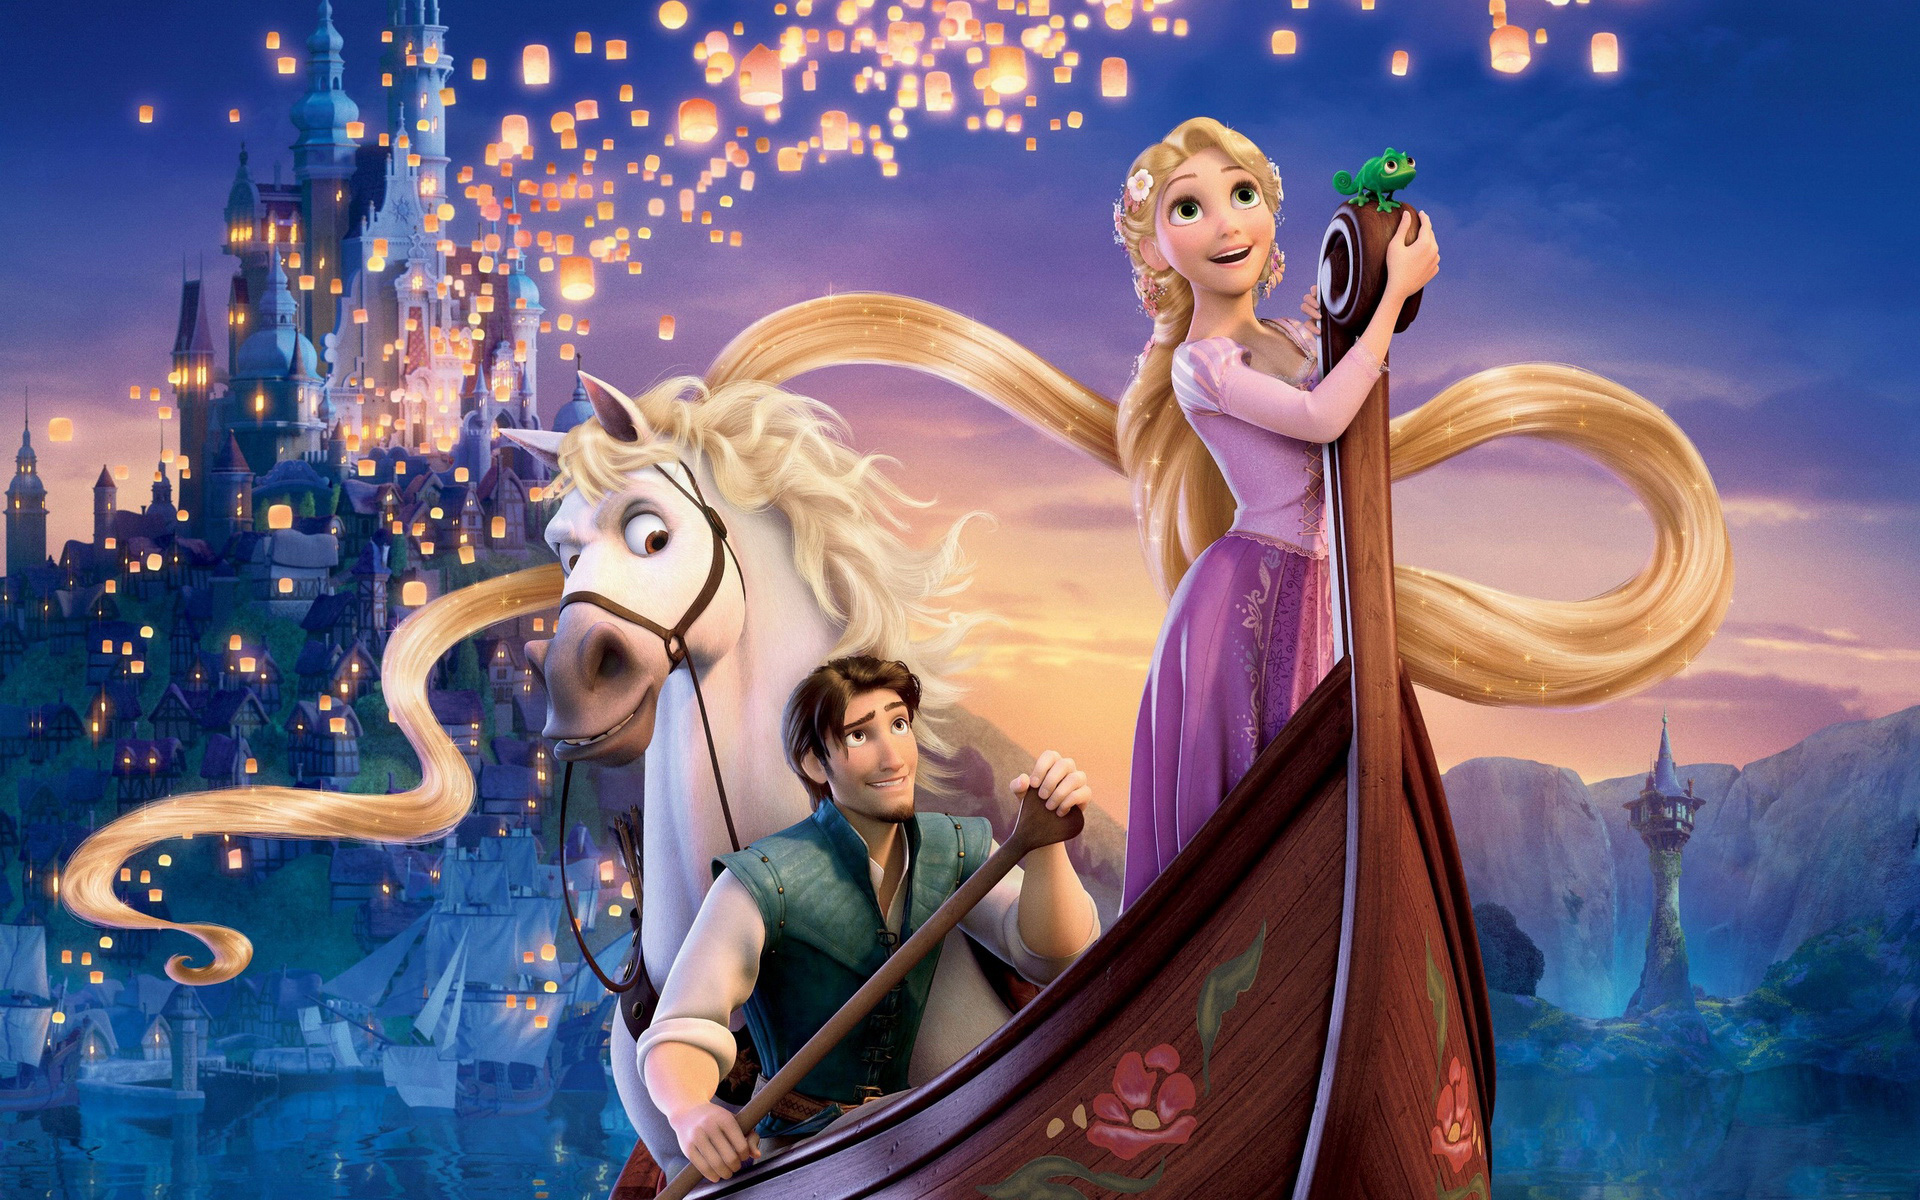 Disney cute princess cartoon wallpaper comics desktop background 1920x1200